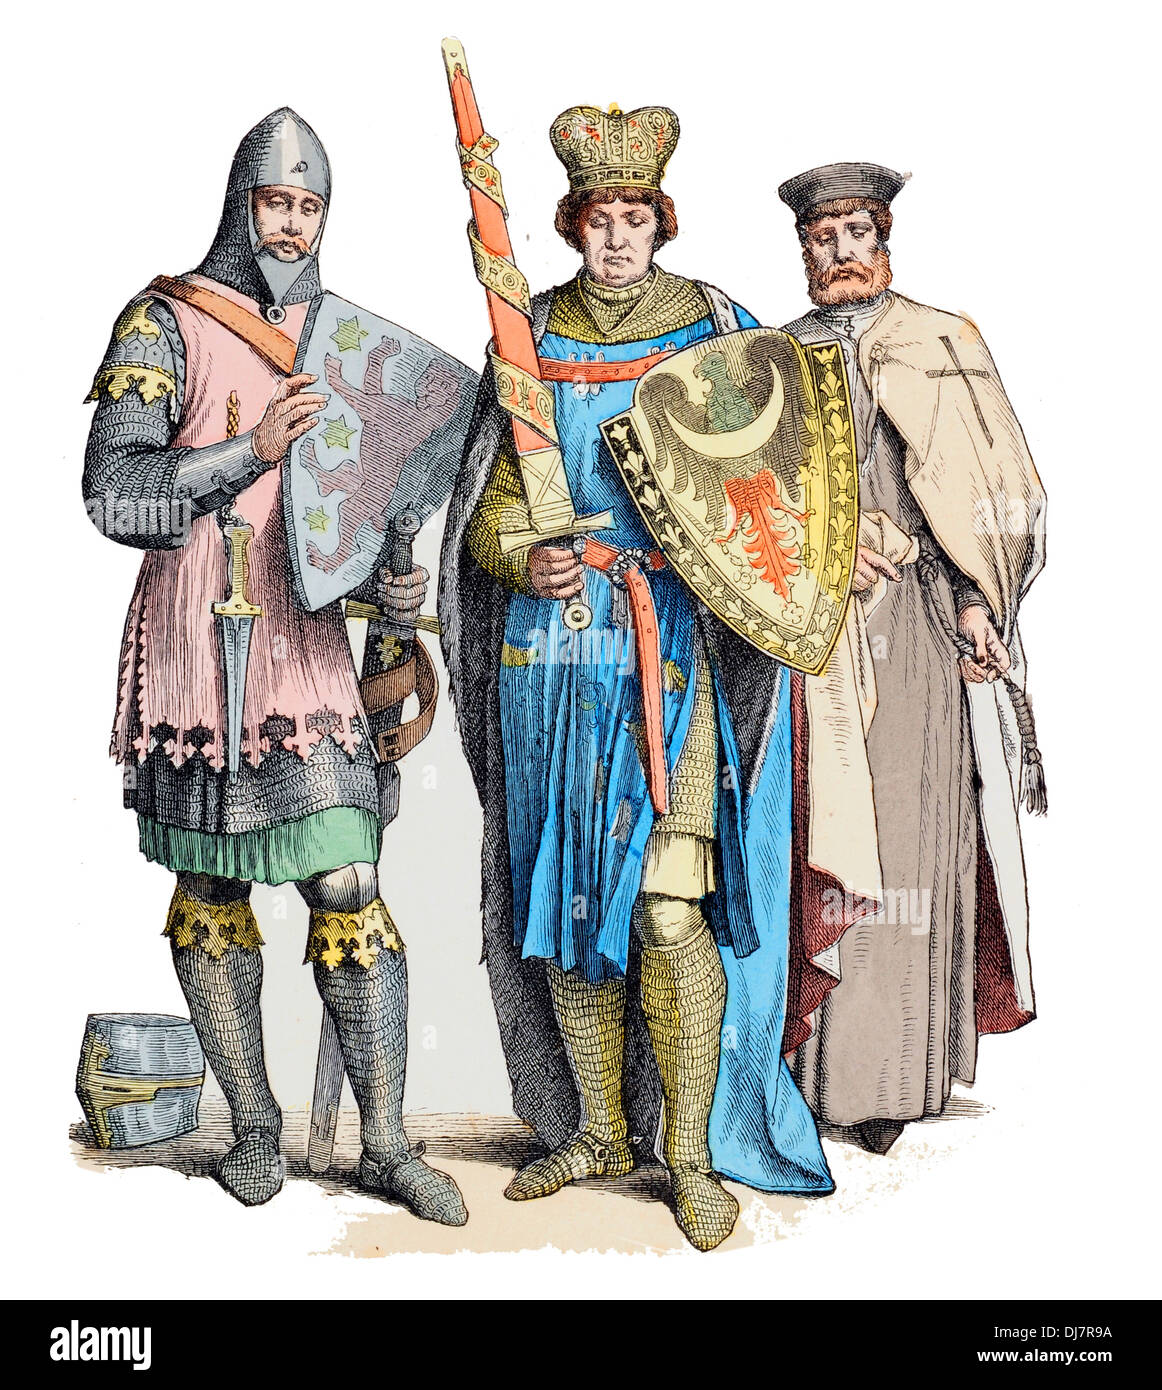 13th Century XIII Germany Medieval Knight  Templar and Prince - Stock Image